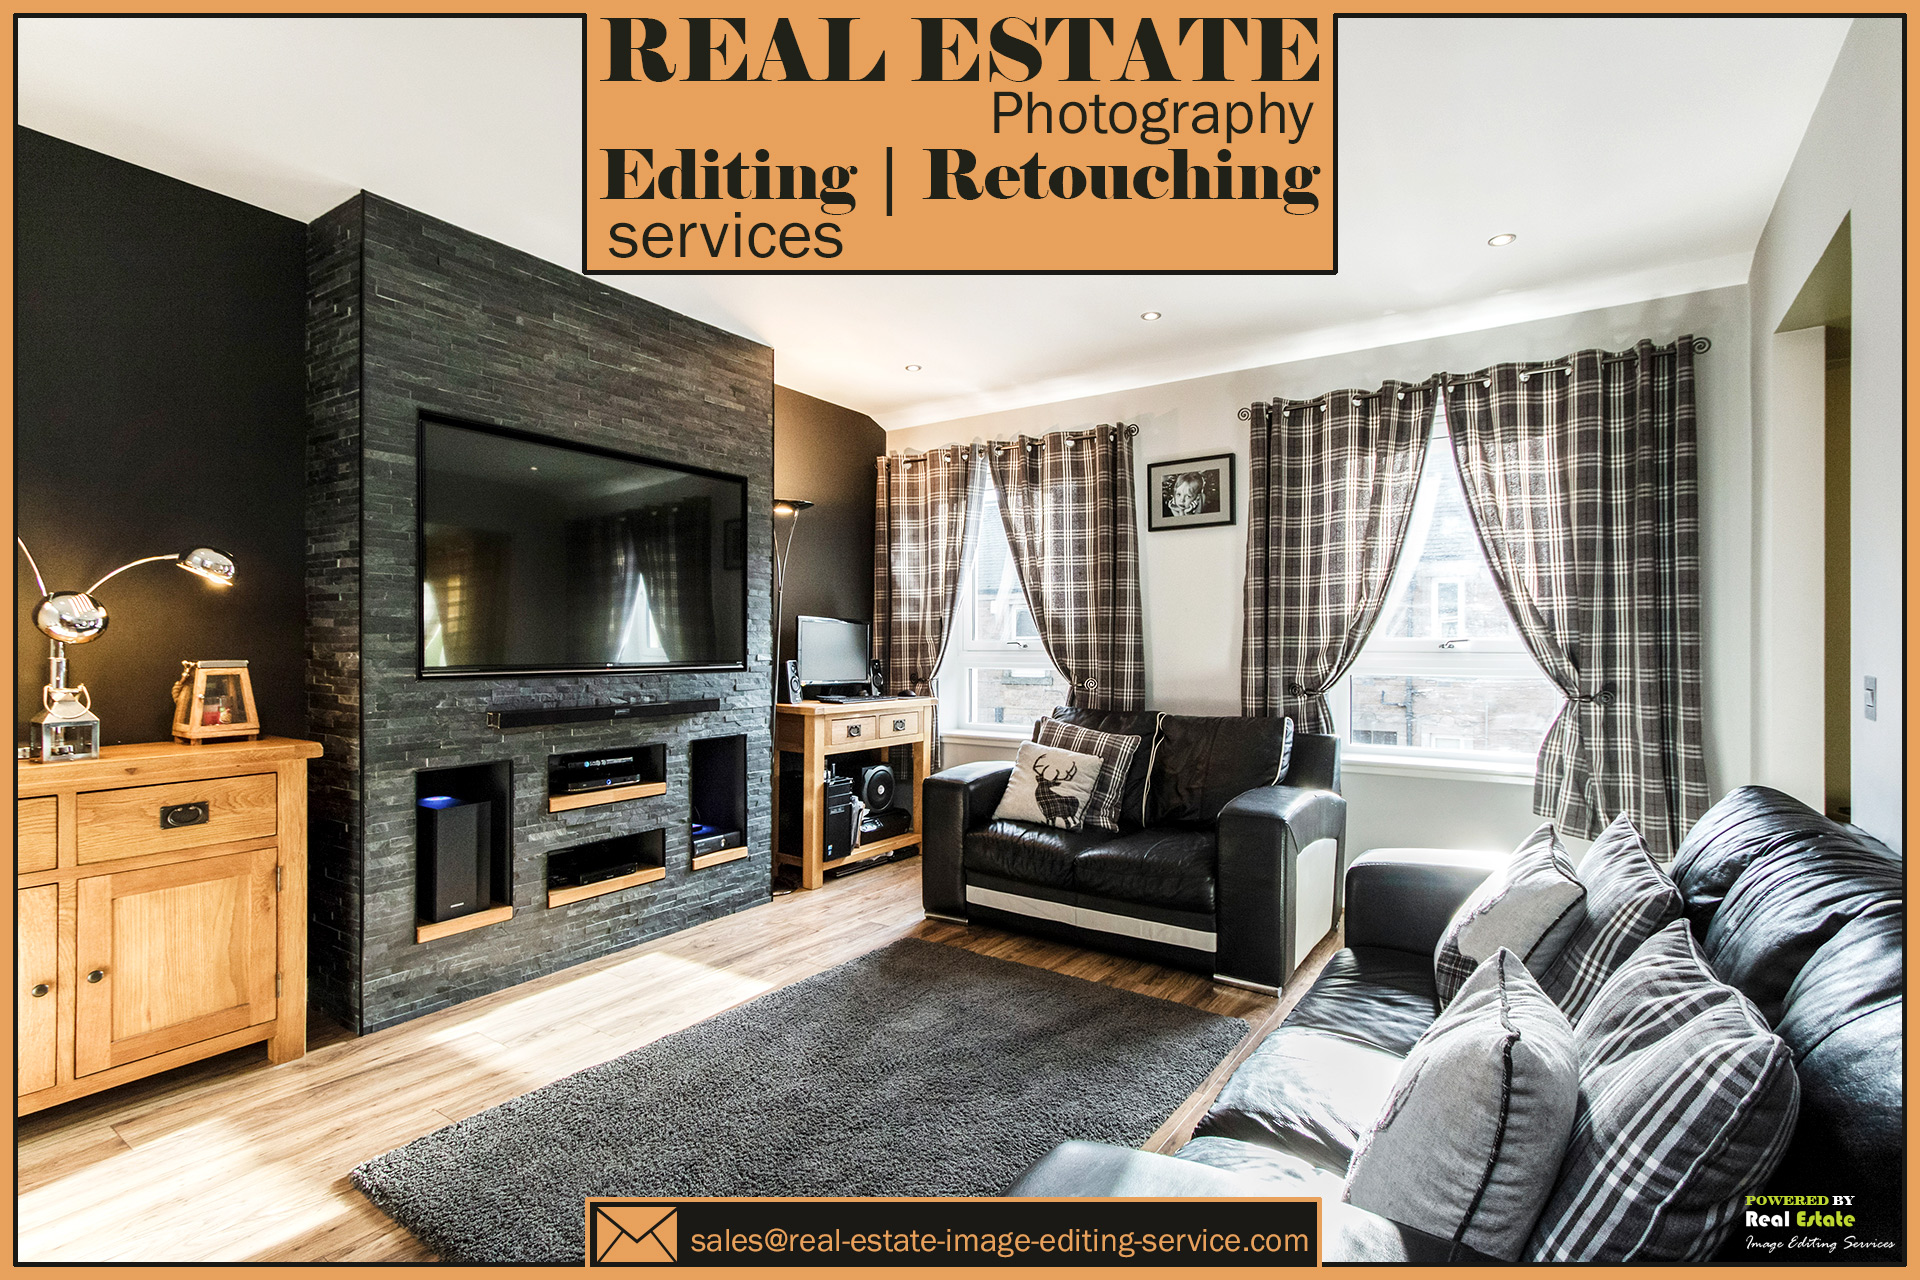 Real Estate Photo Editing Services in UK and Europe